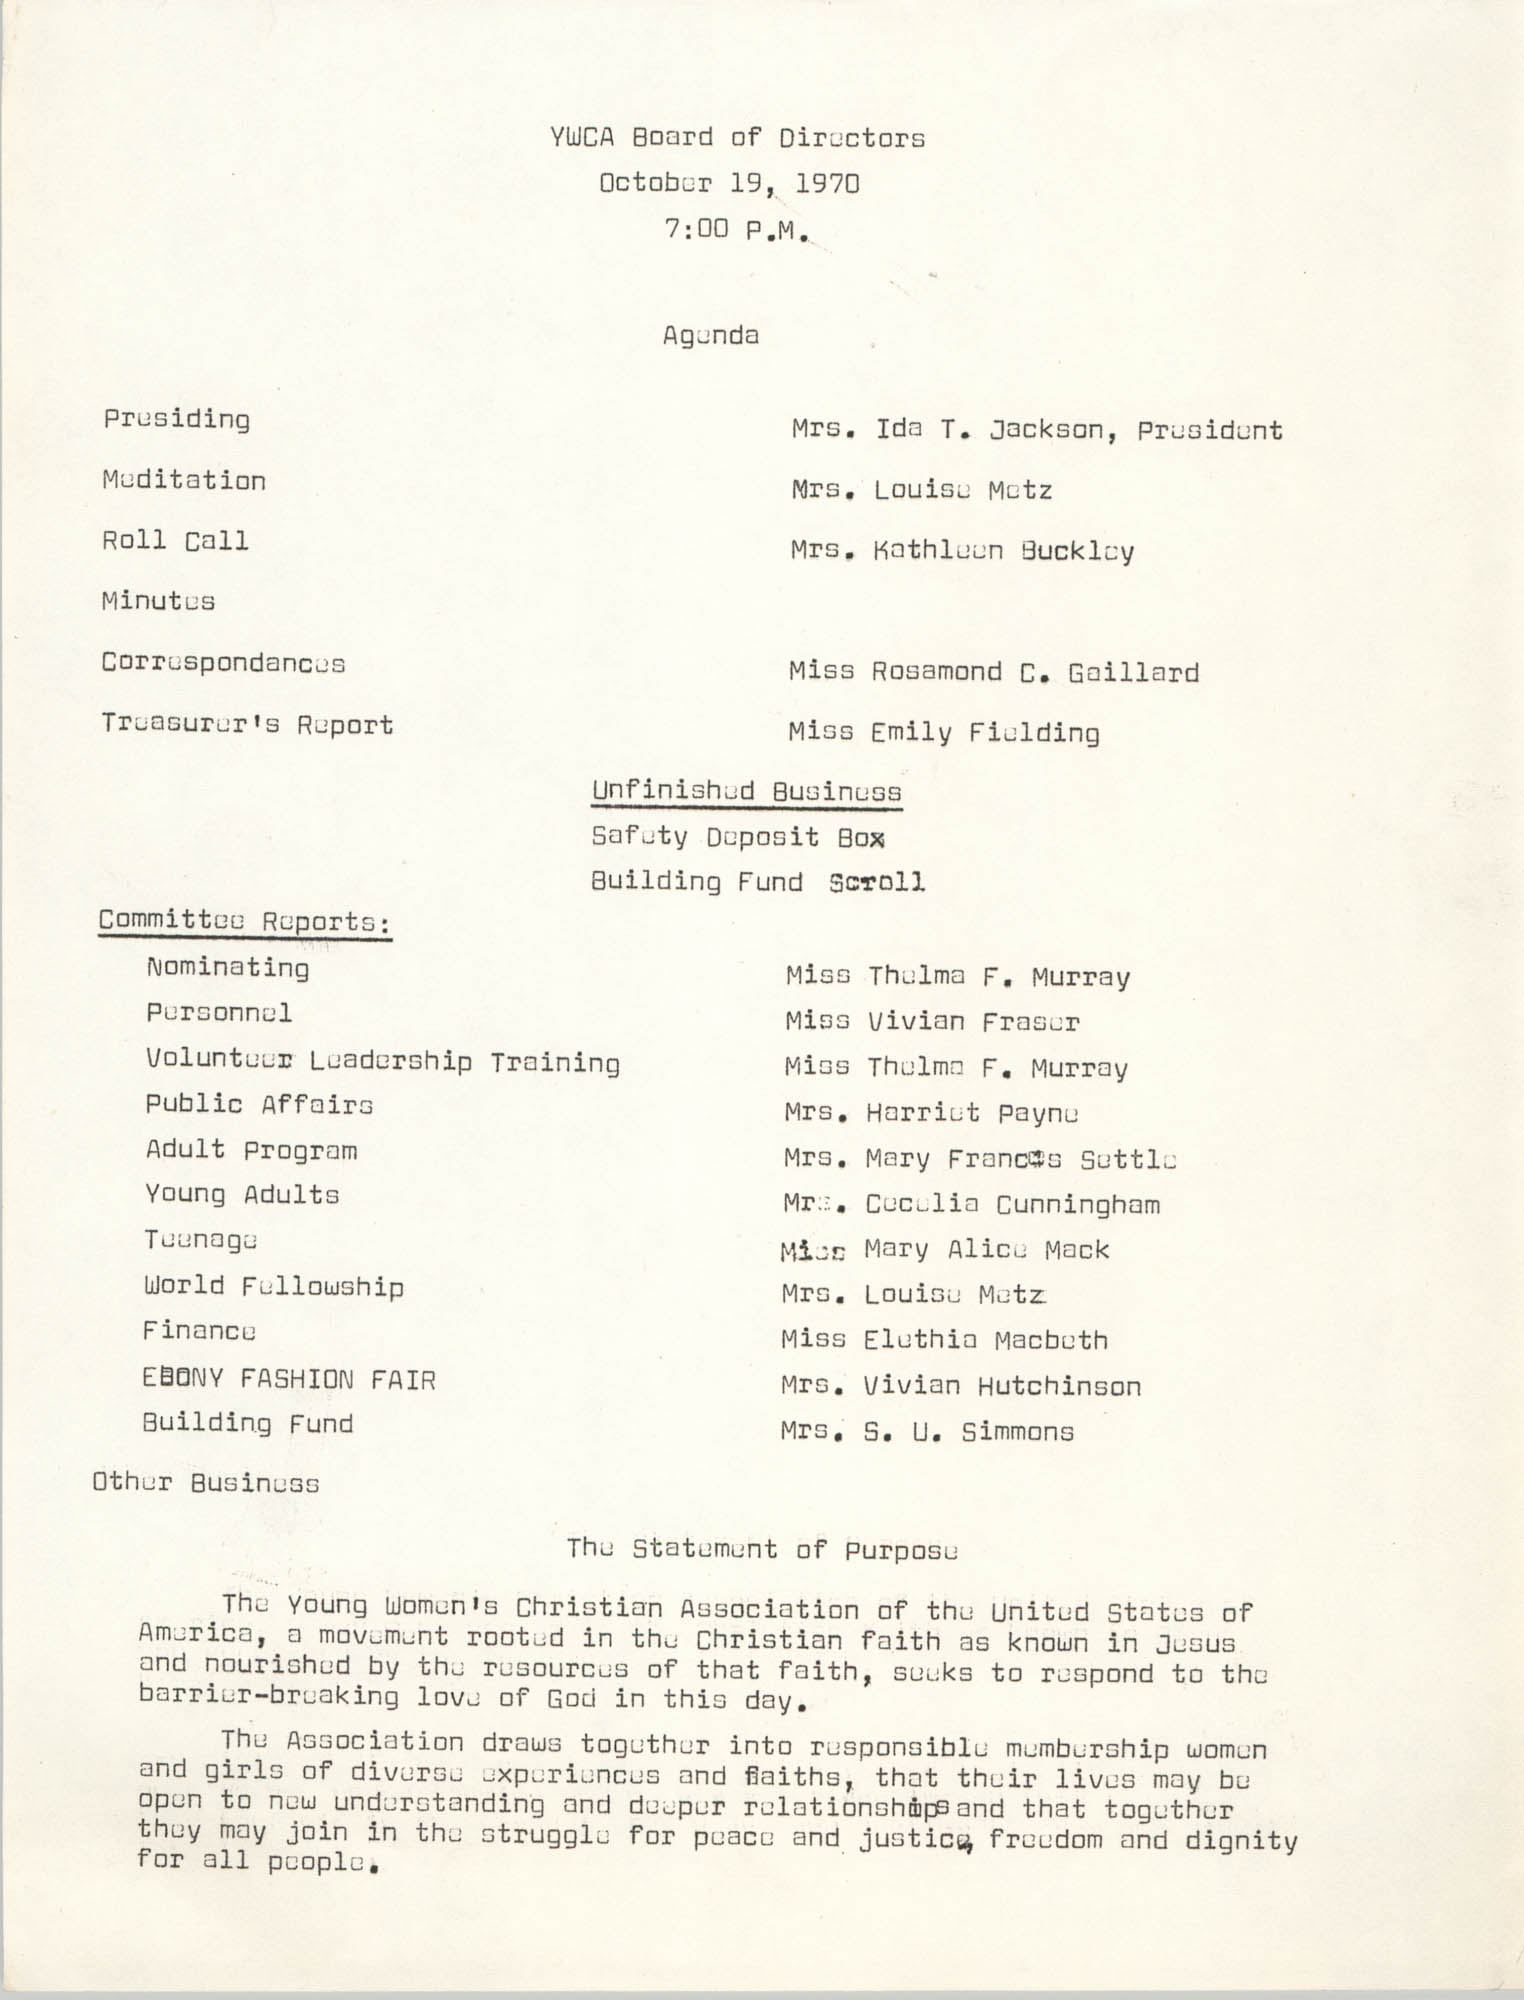 Agenda, Y.W.C.A. of Greater Charleston Board of Directors Meeting, October 19, 1970